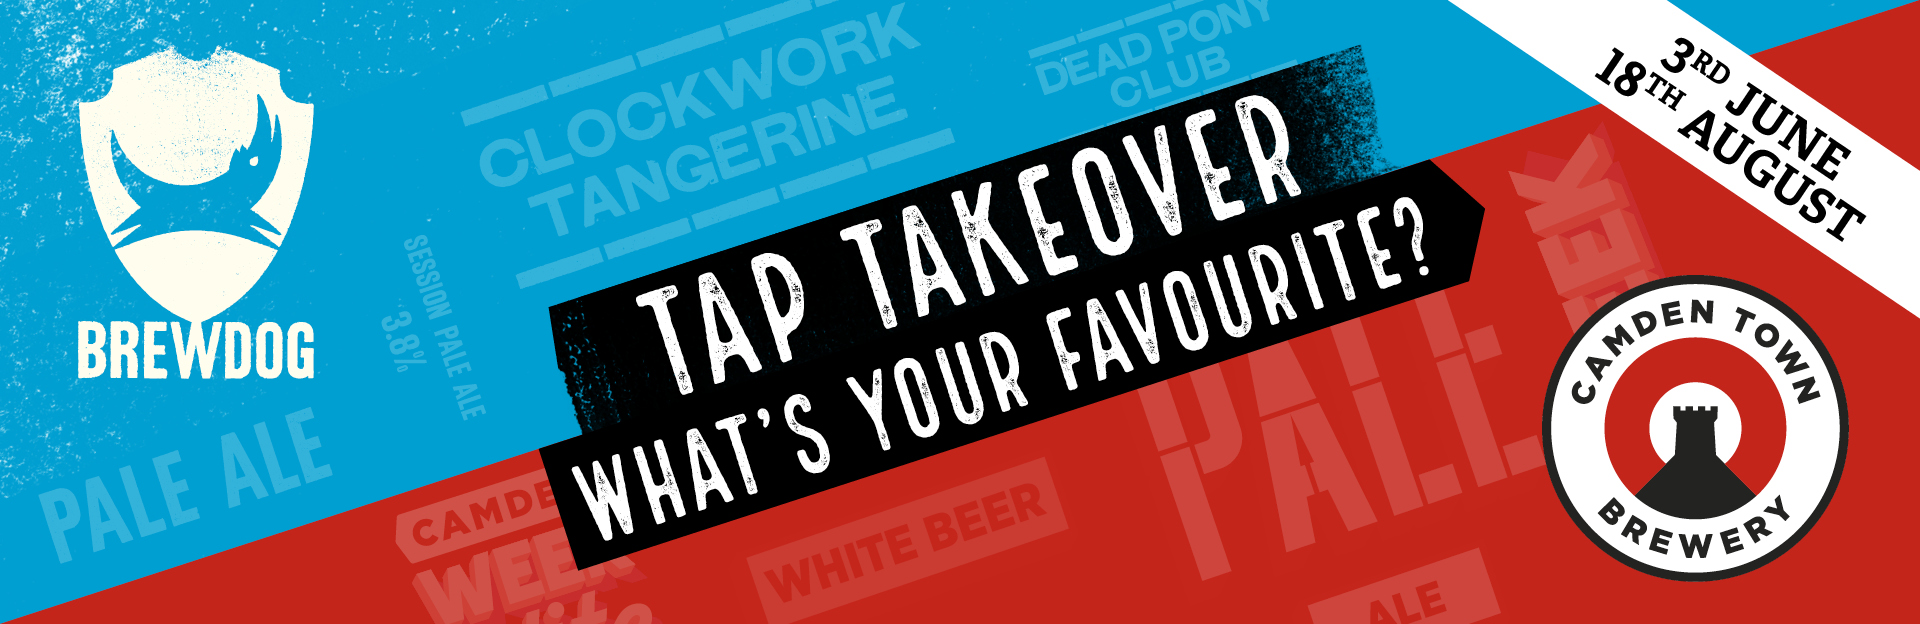 Craft Takeover at The Black Bull